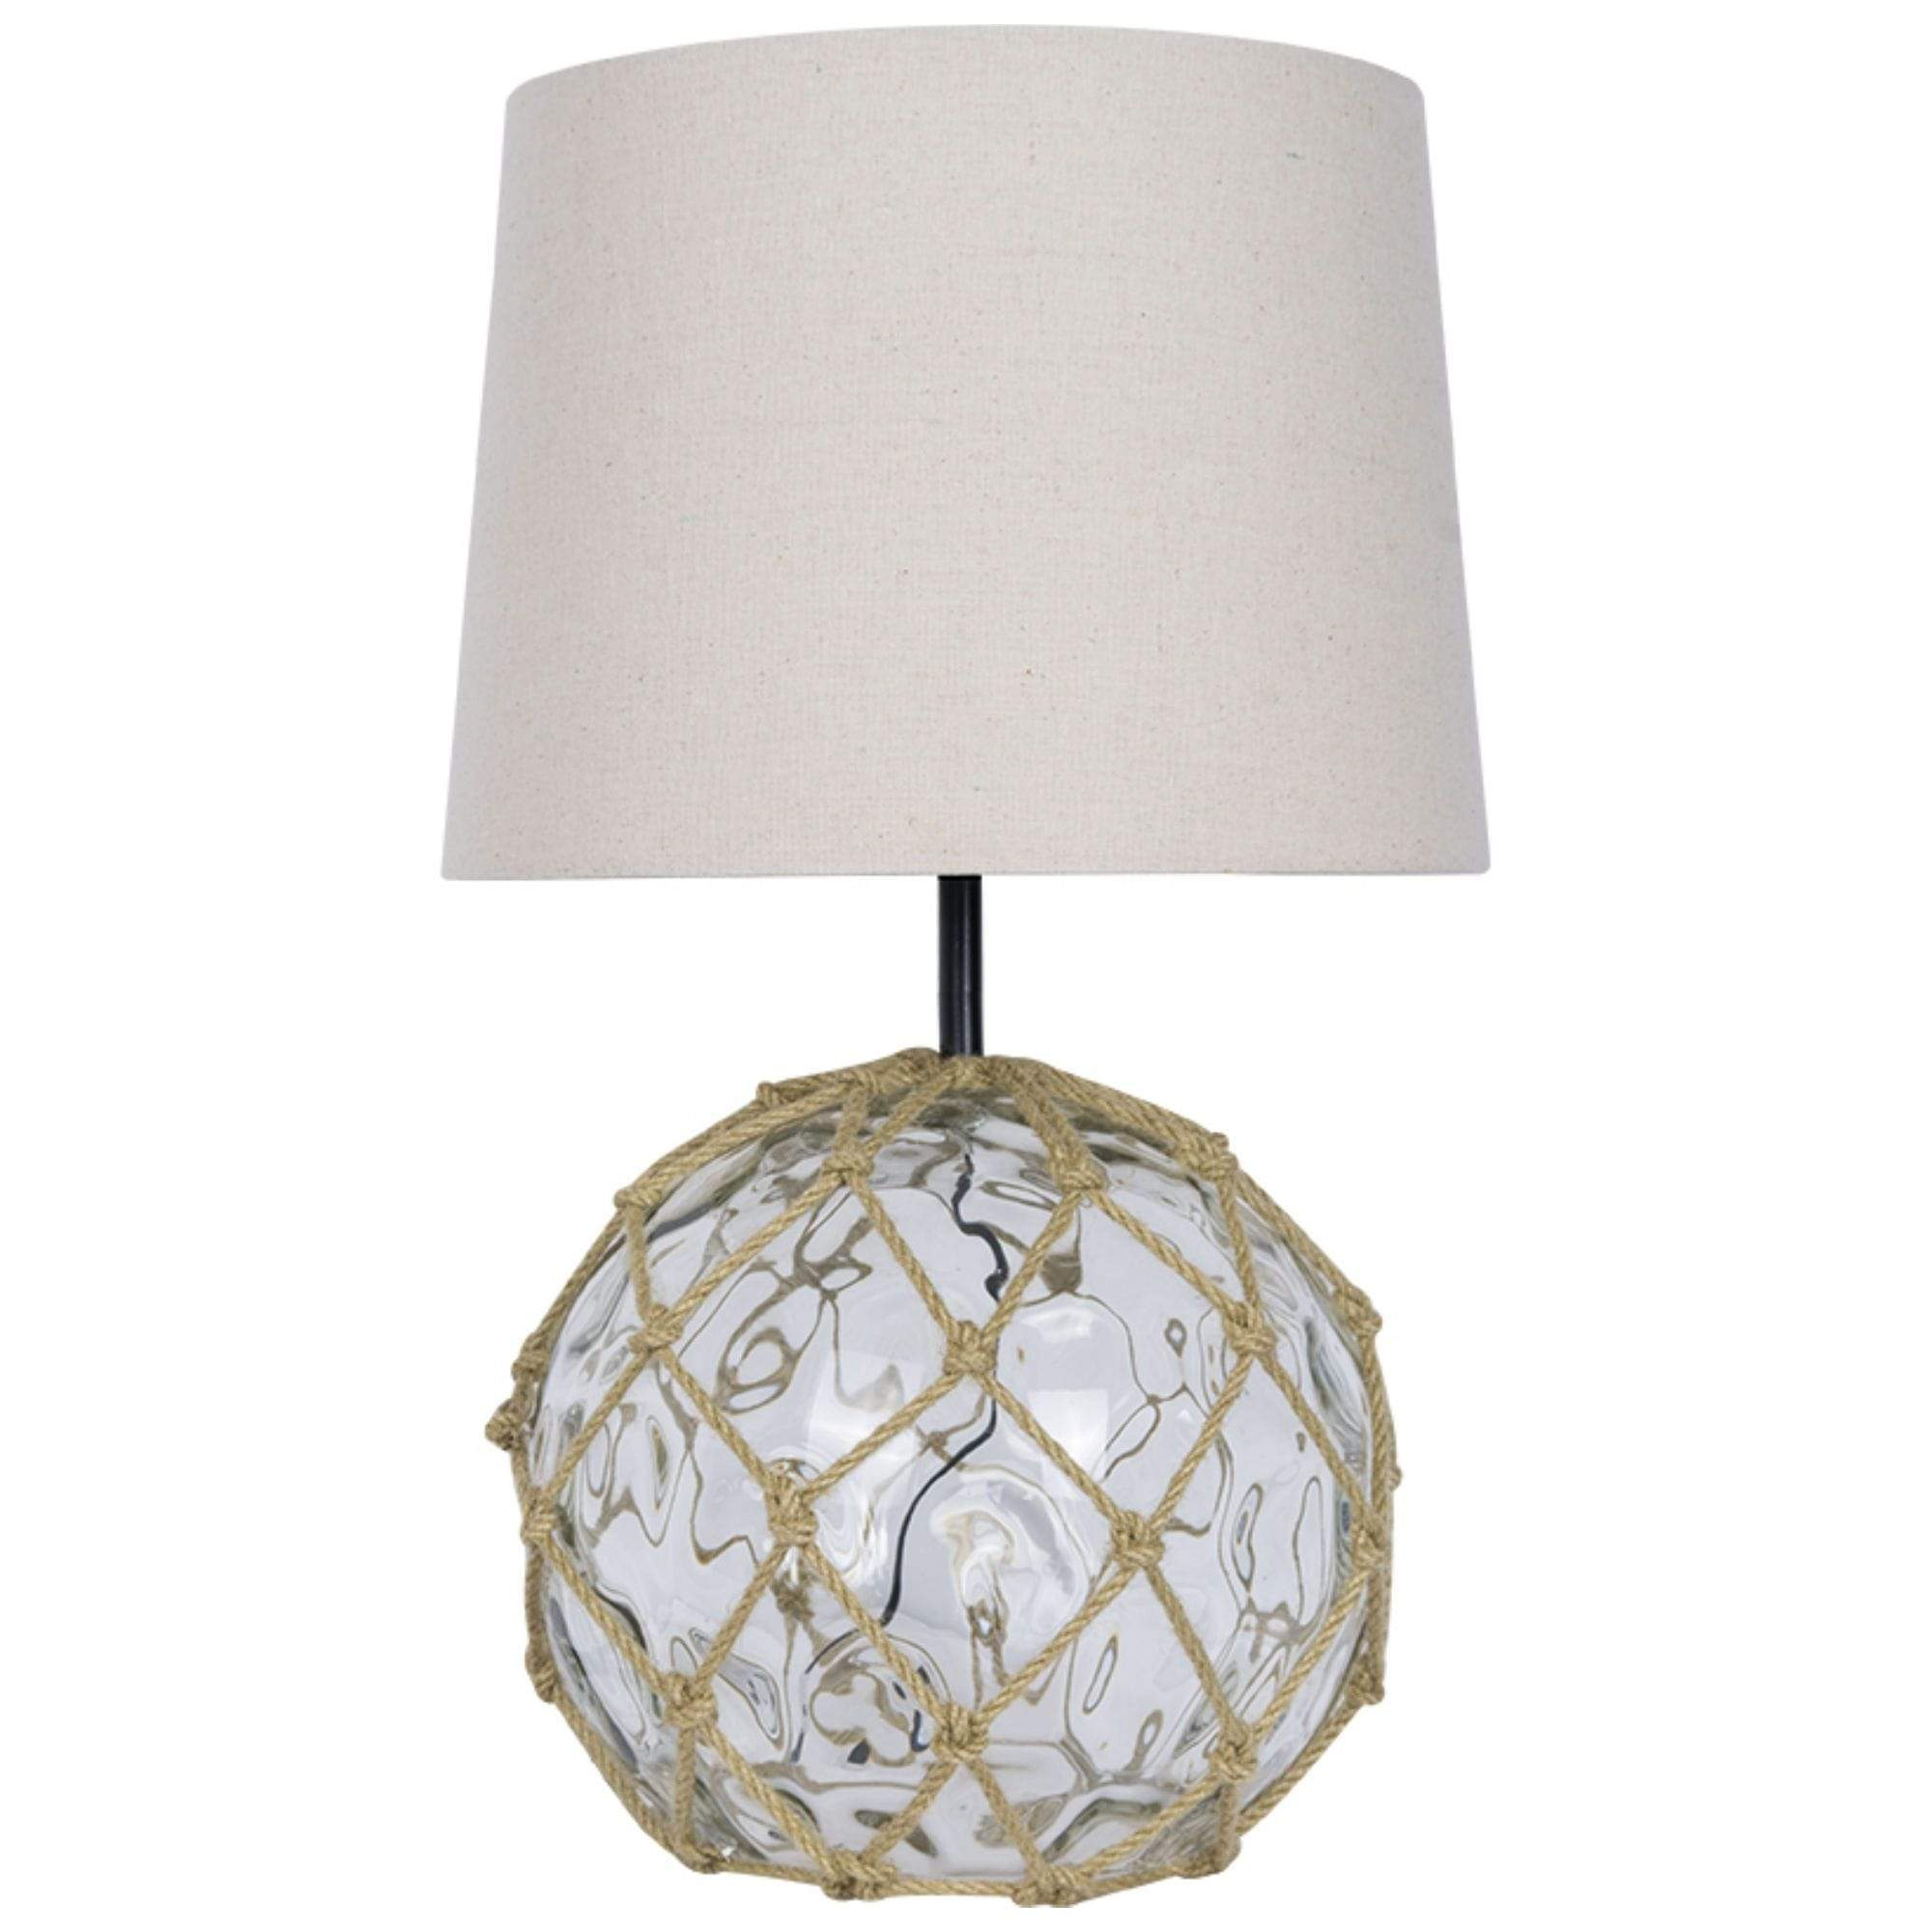 Batela Giftware-Lamp-Clear Glass Buoy Table Lamp